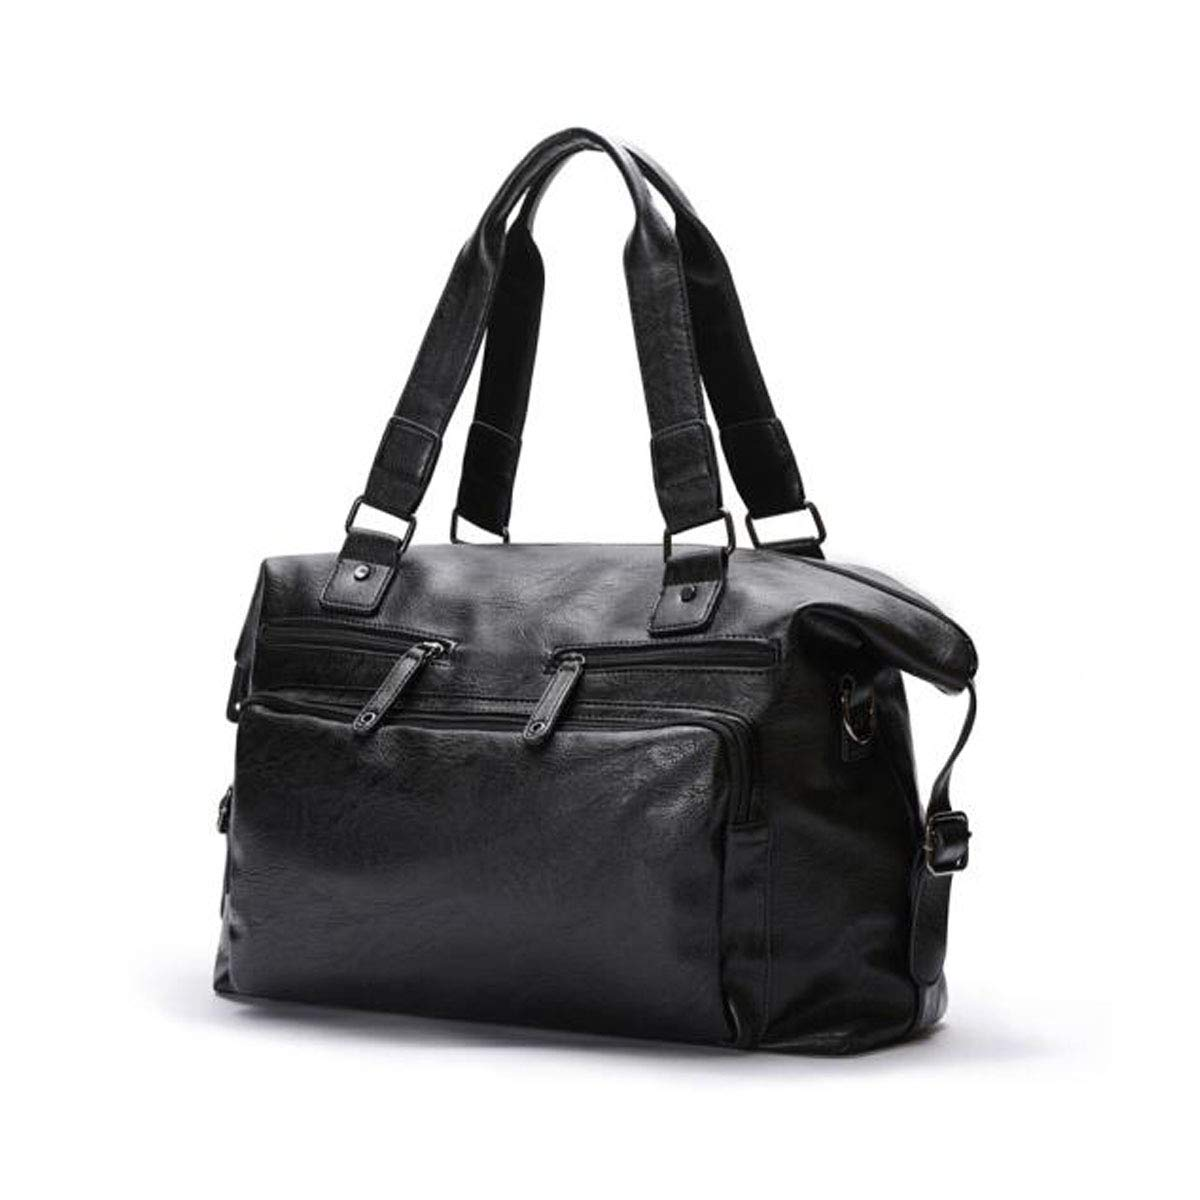 Black Size: 431833cm Wear Resistant Short-Distance Business Travel Shoulder Bag Large-Capacity Handbag Qiaoxianpo01 Briefcase Color : Black